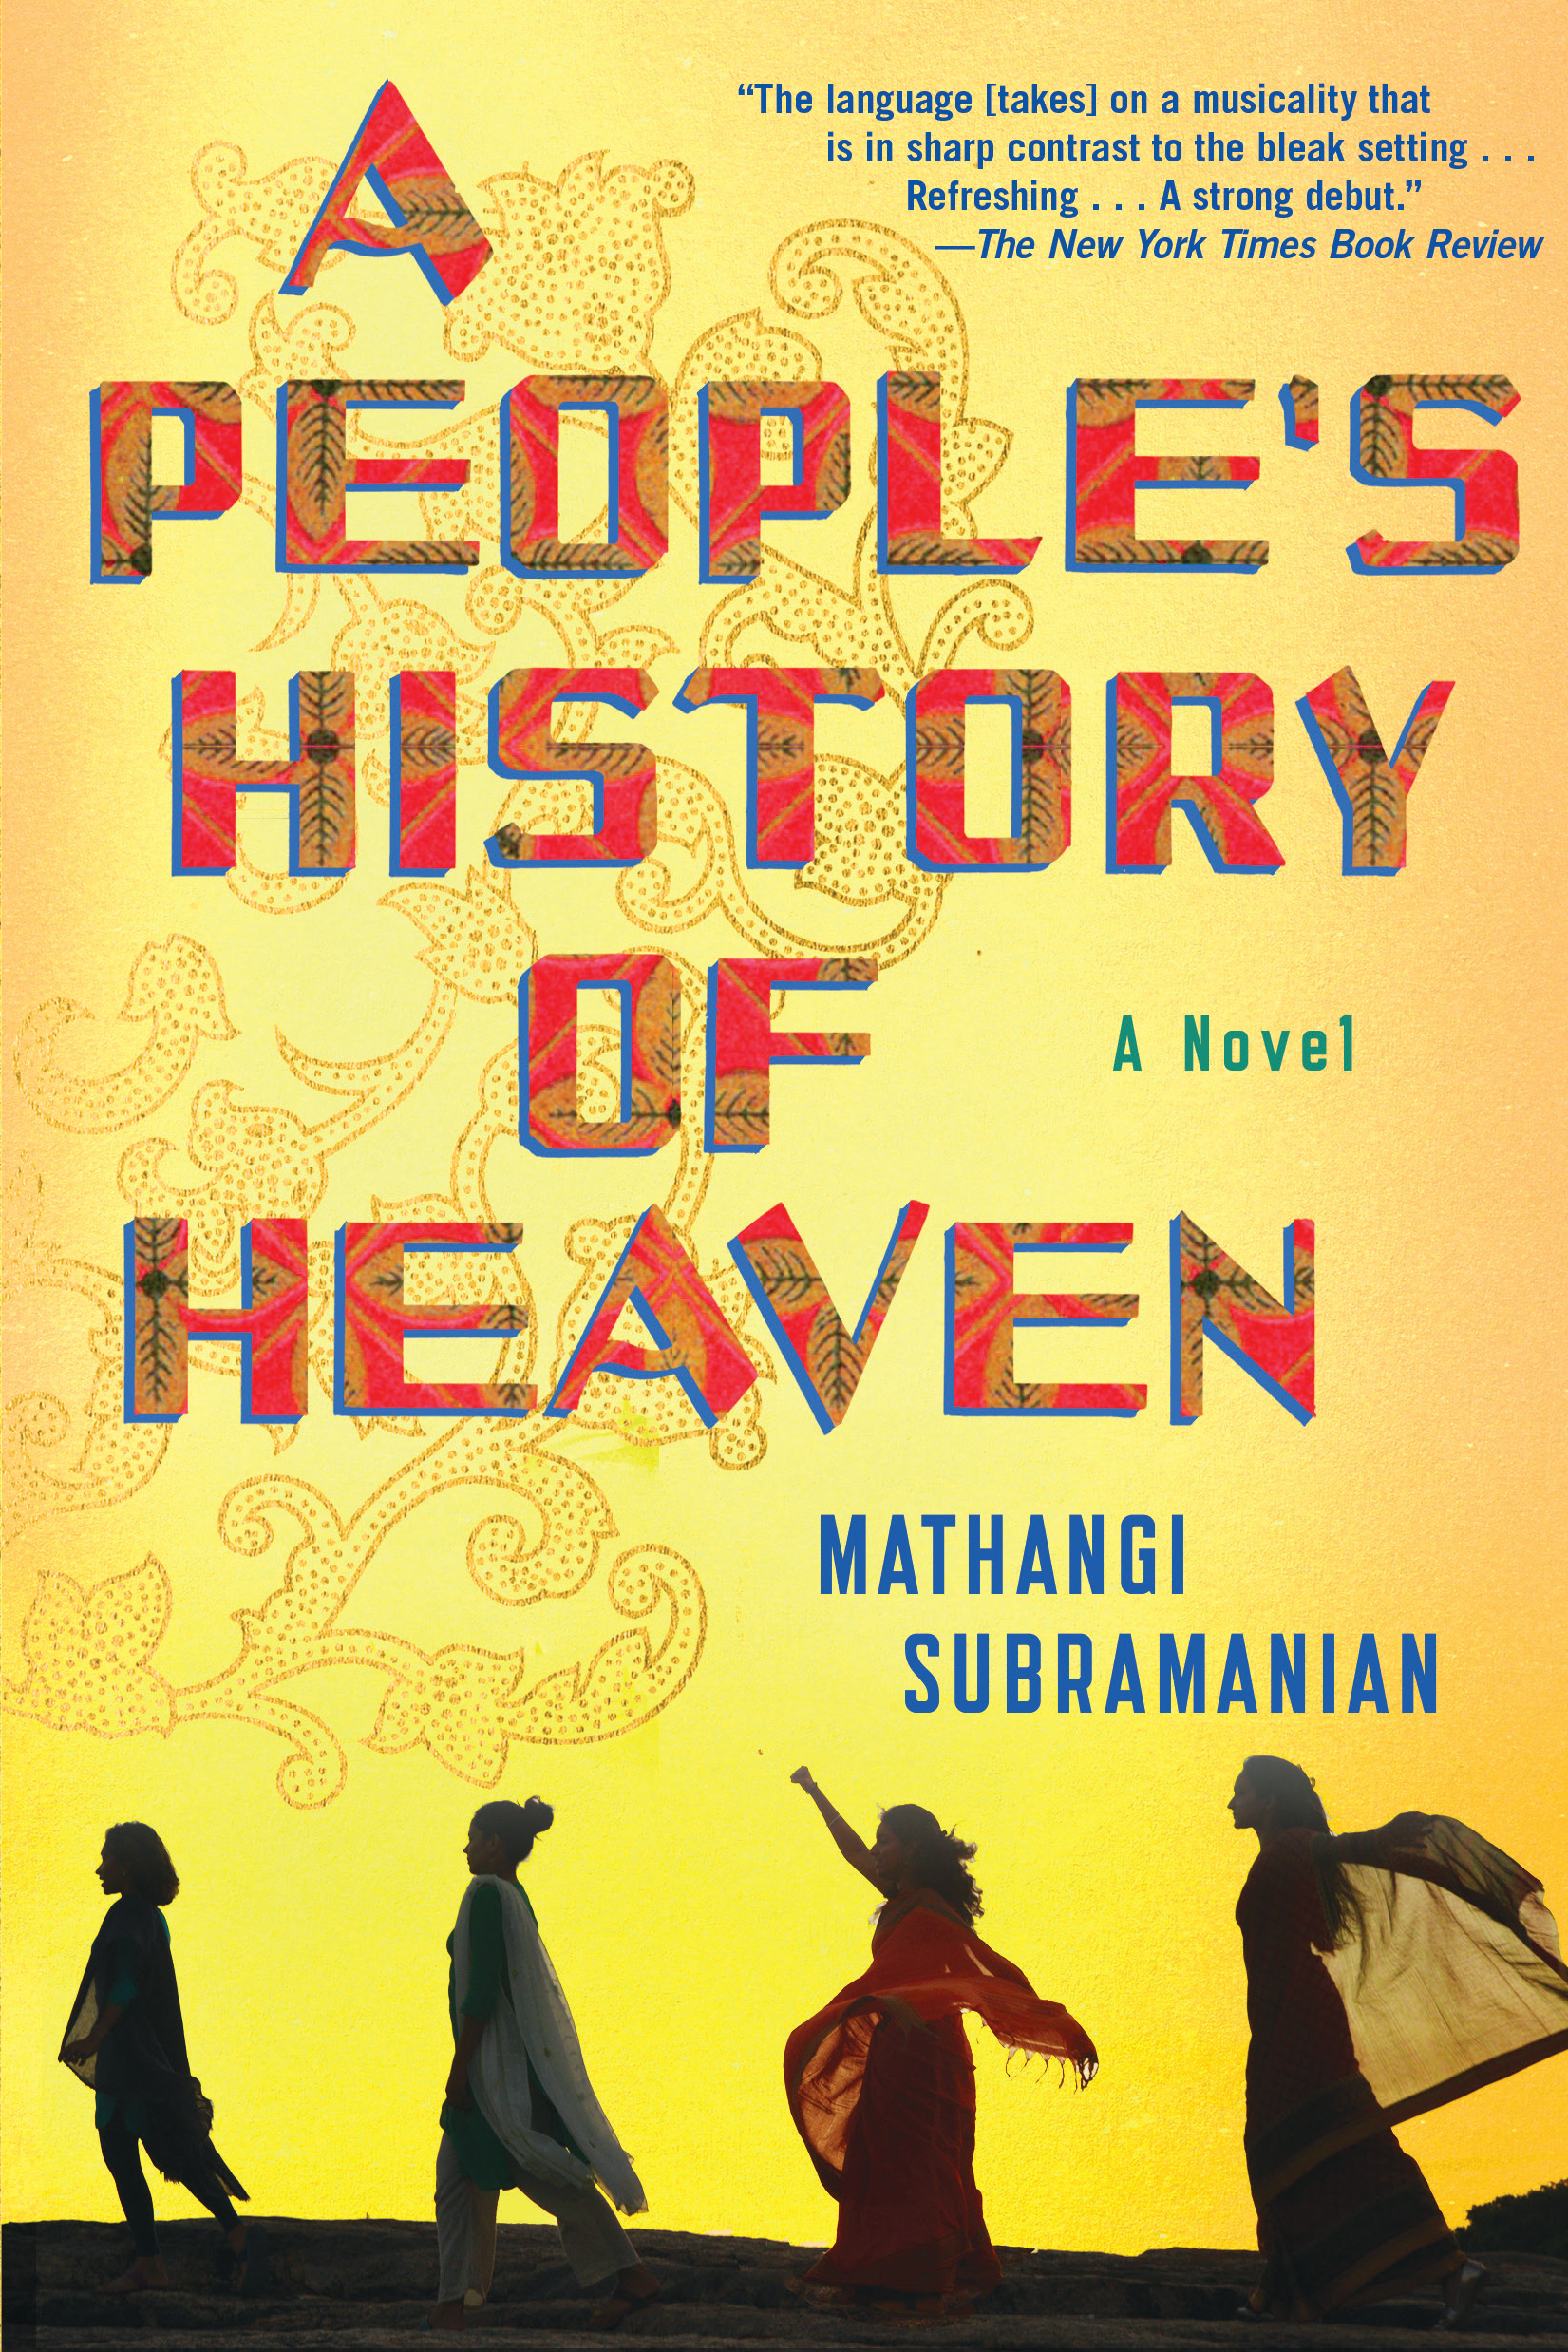 Book Review - A People's History of Heaven by Mathangi Subramanian